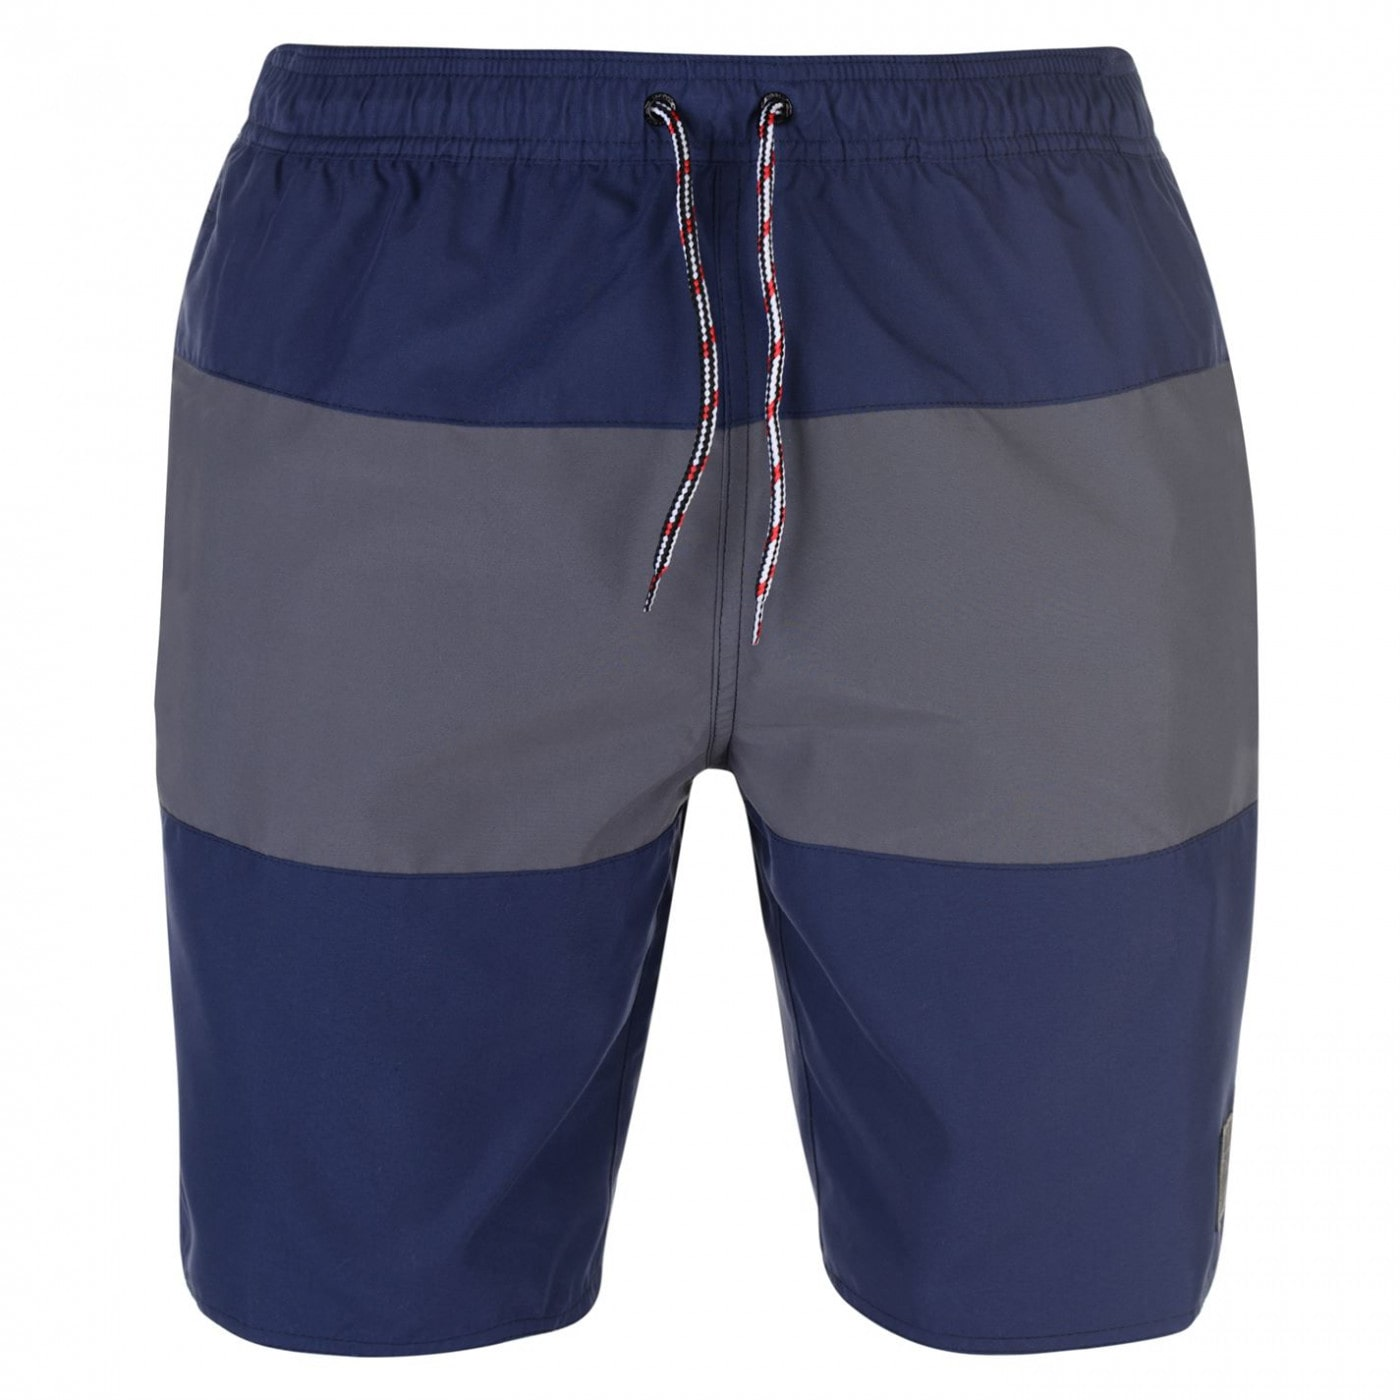 Speedo Panel Swim Shorts Mens